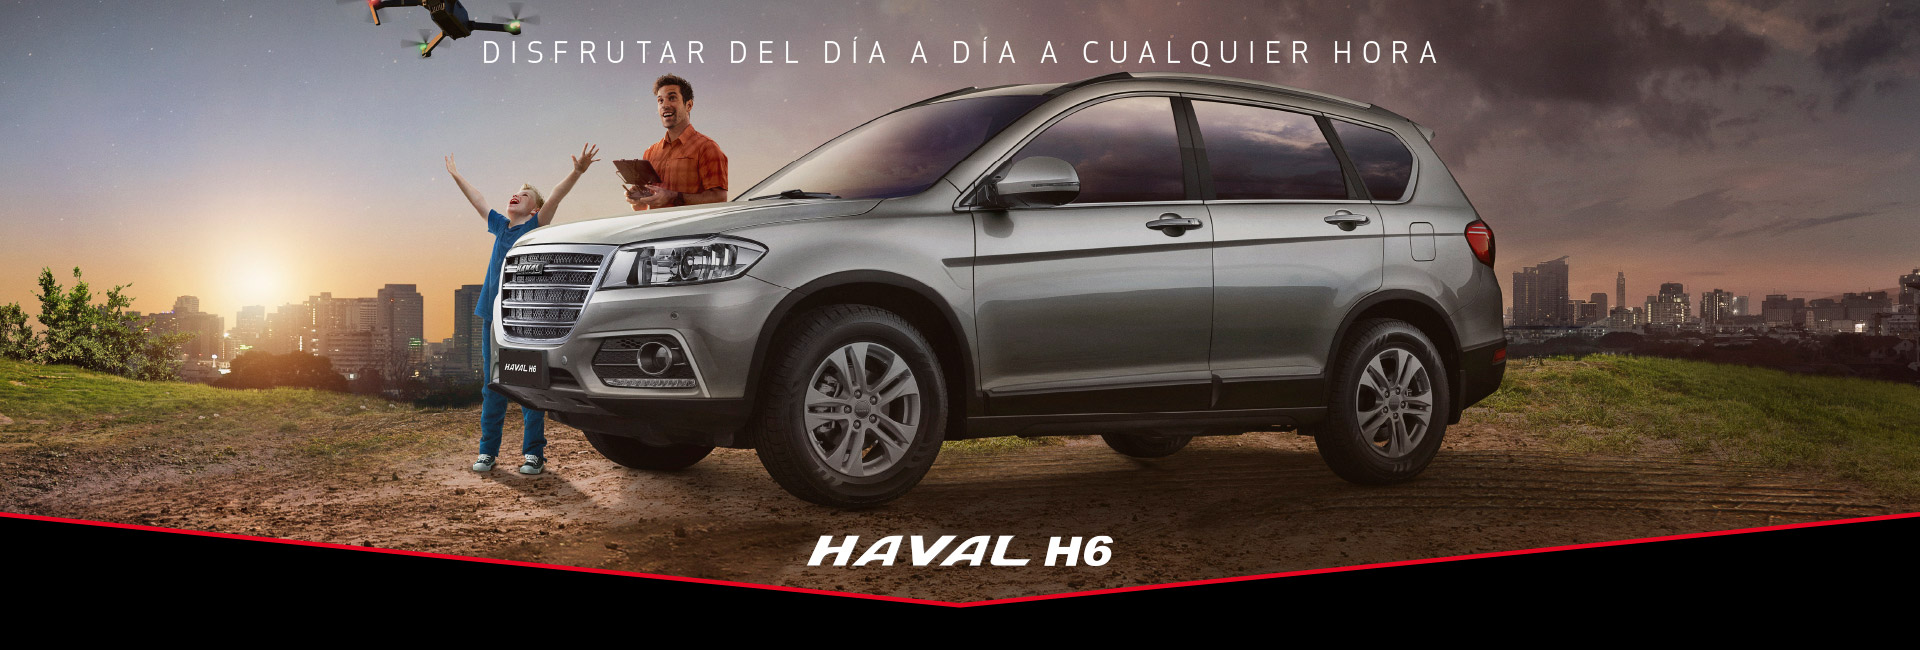 Haval H6 1.5 4x2 Elite AT